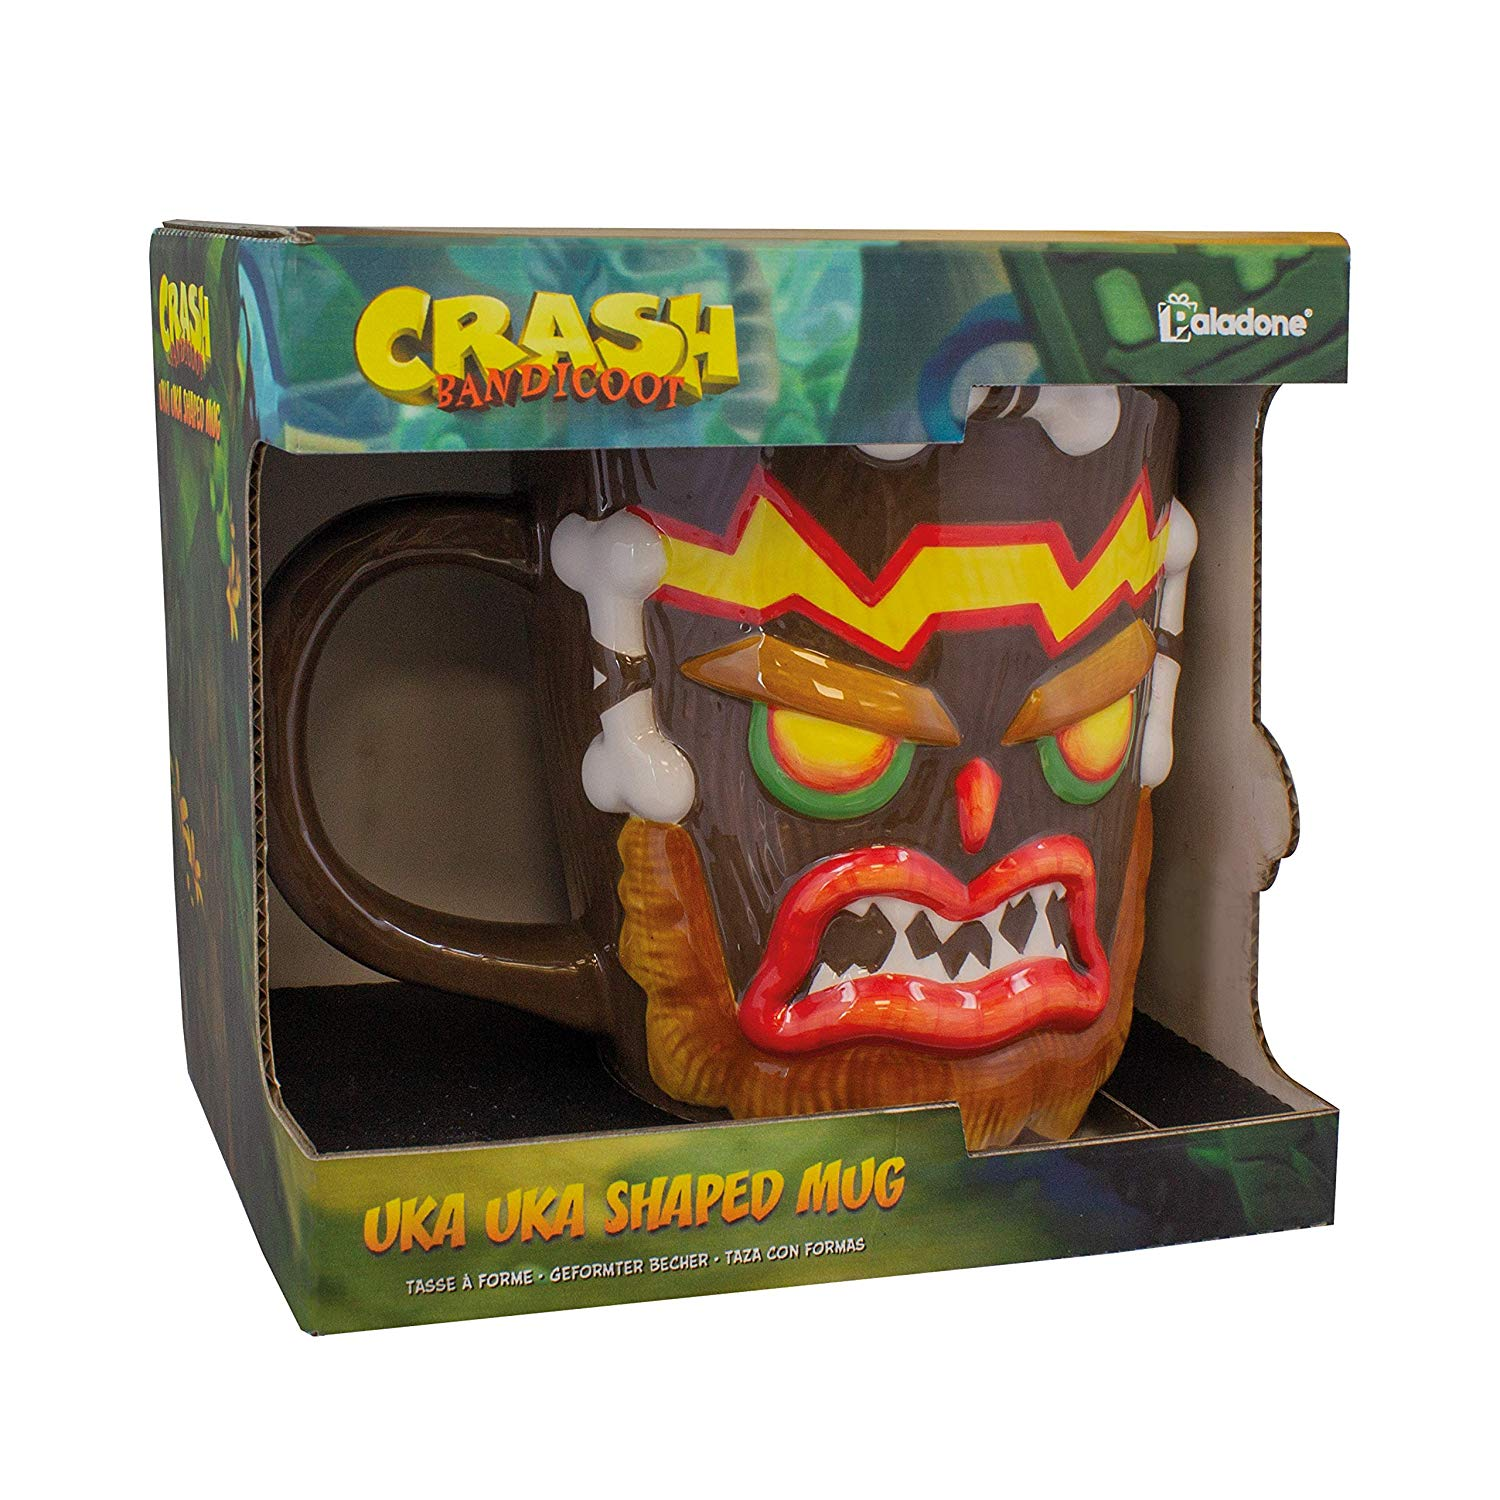 Crash Uka Uka Shaped Mug